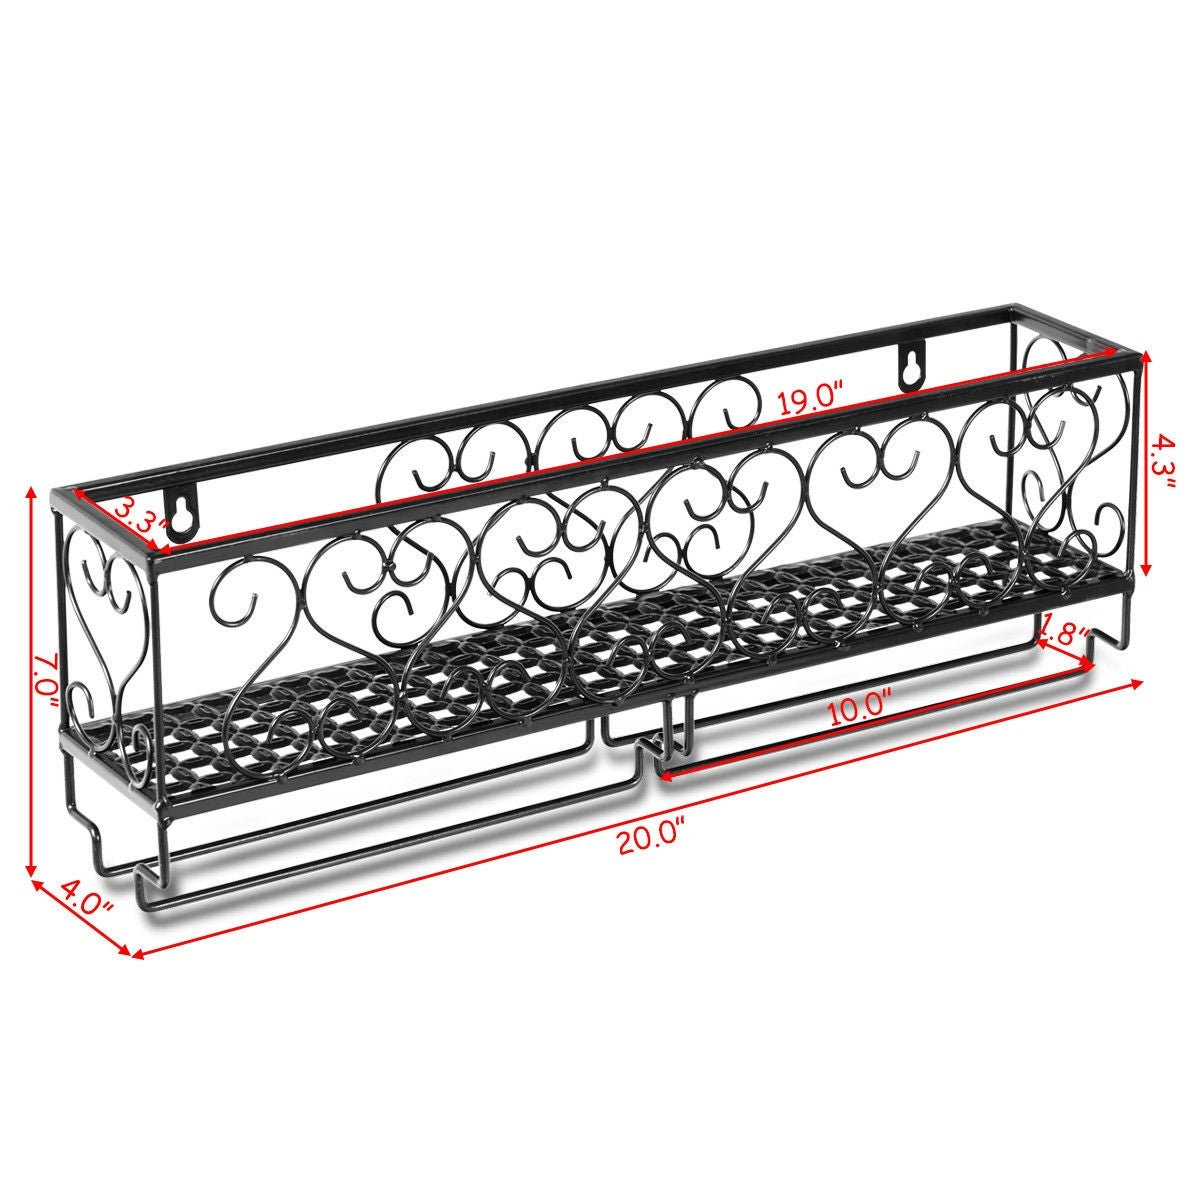 Three Glass Holder Wall Decor Throughout Latest Shop Wall Mounted Metal Wine Rack Wine Bottle Storage W/ Glass (Gallery 15 of 20)